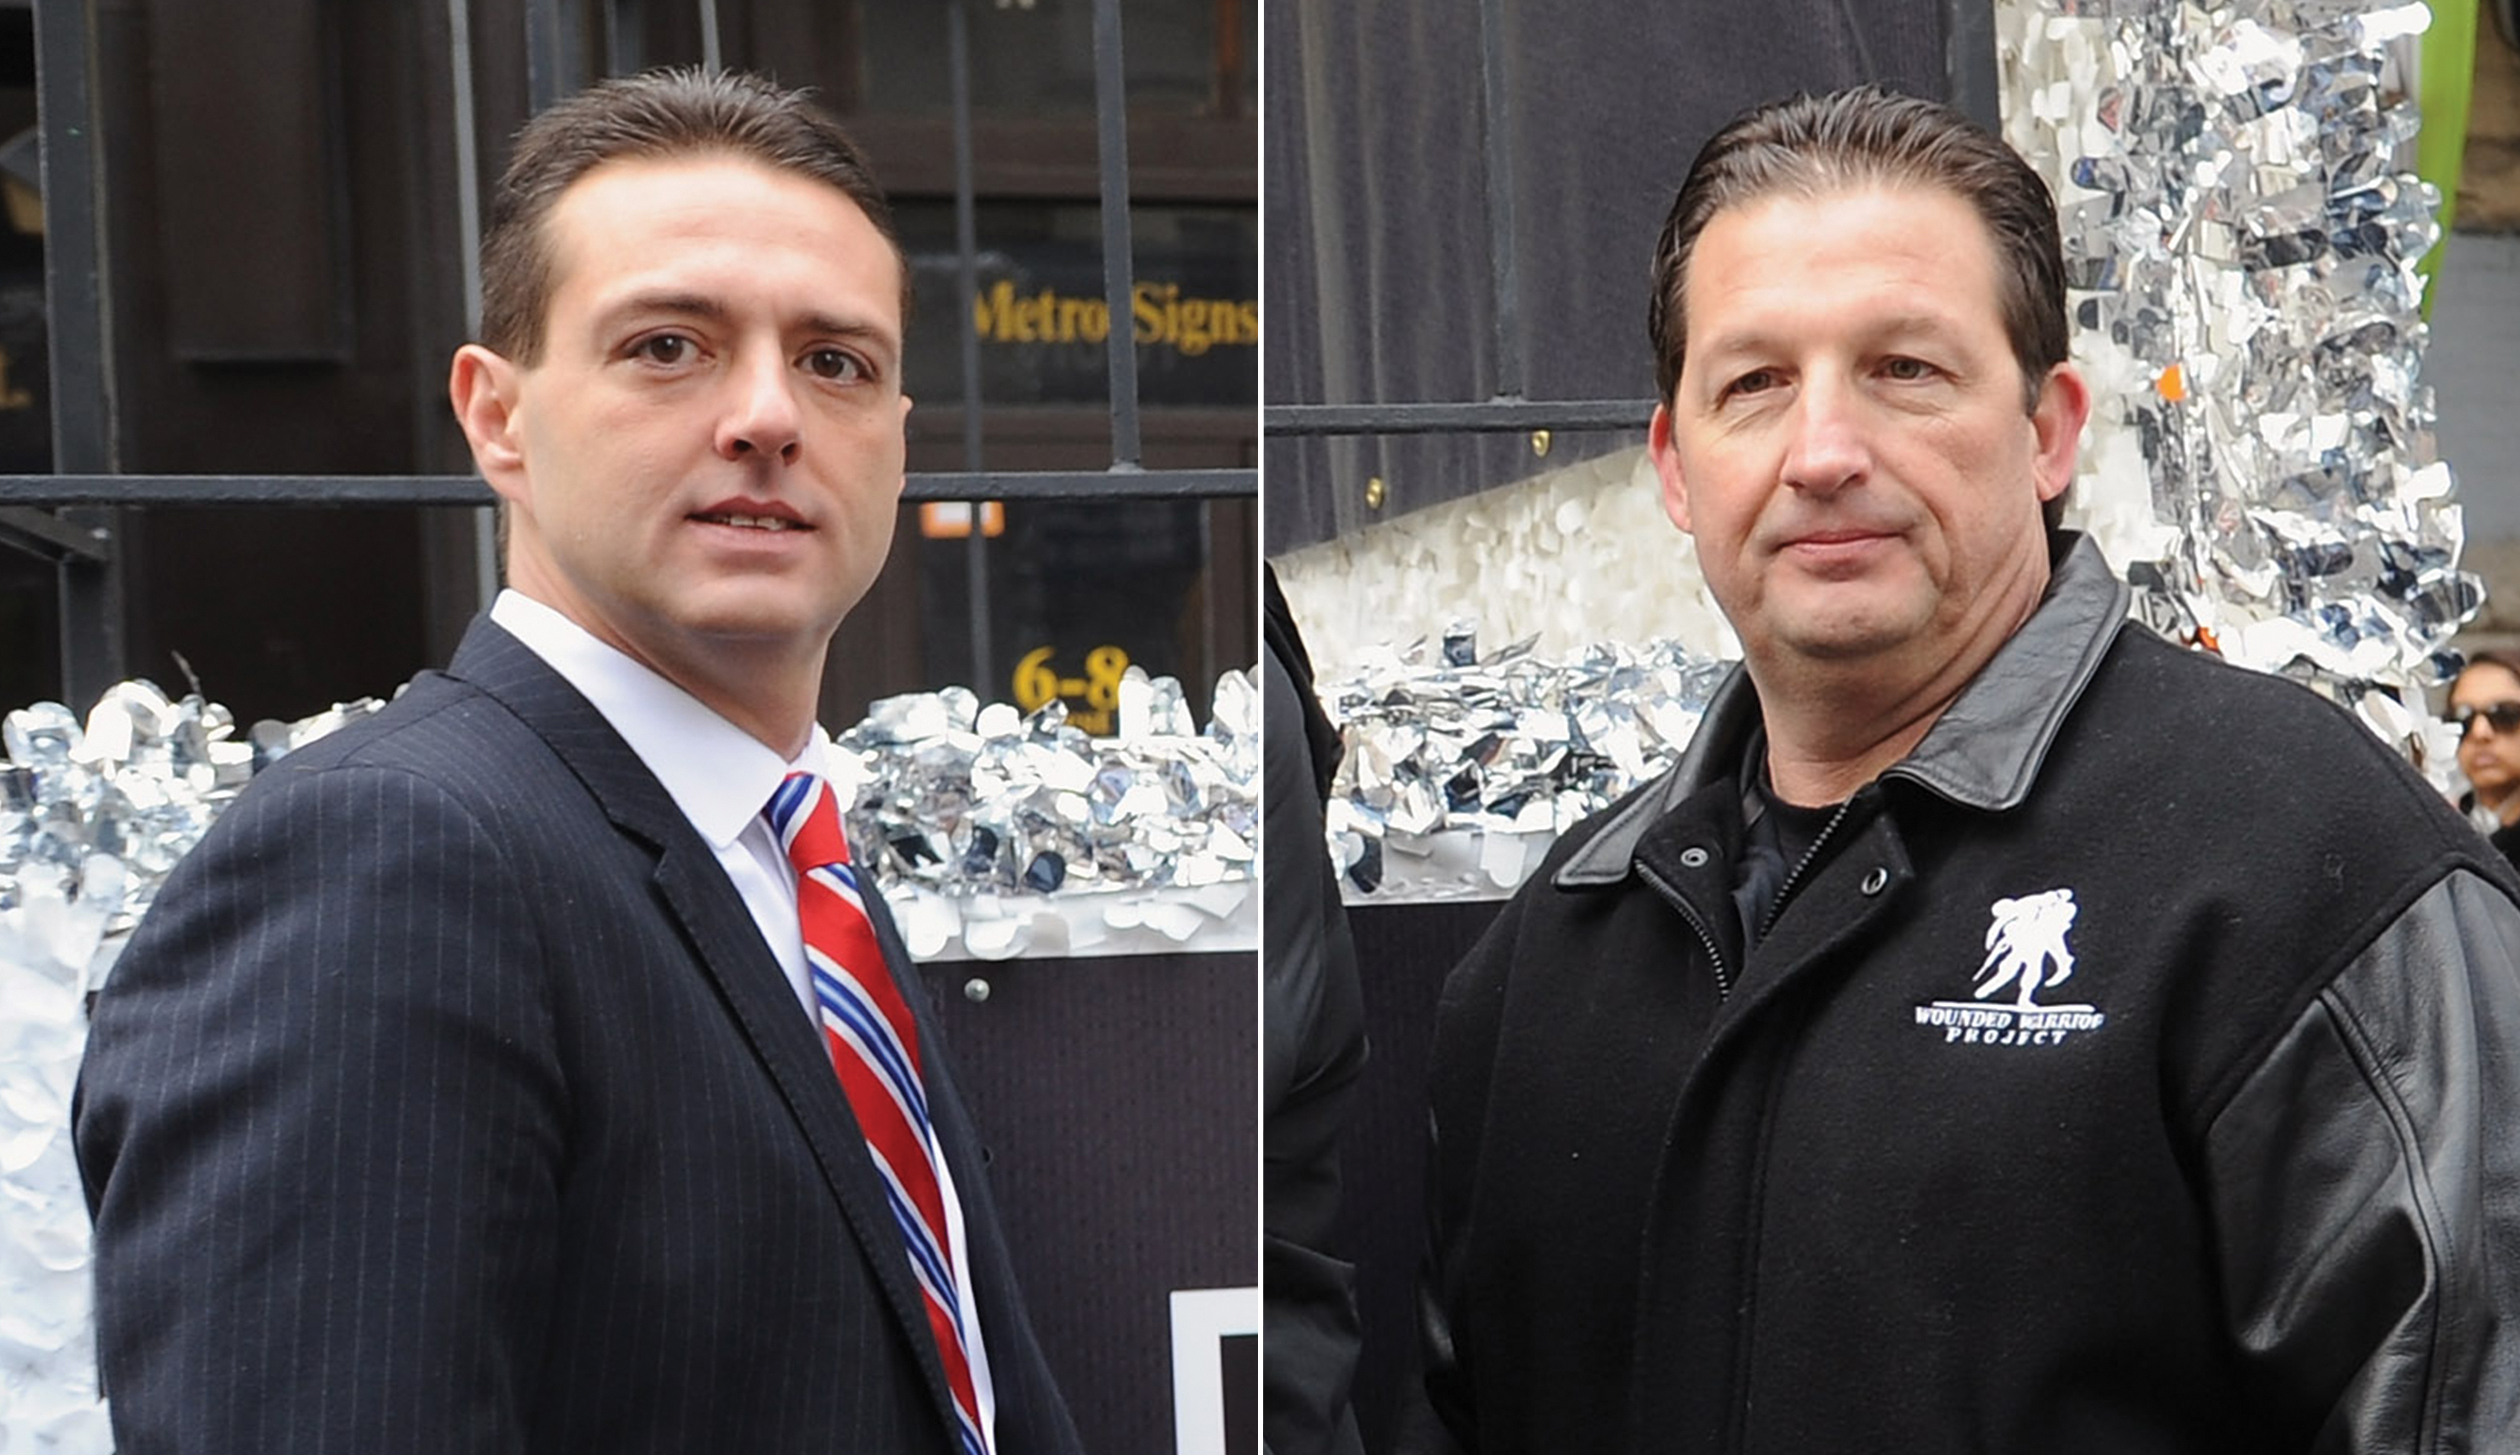 Steven Nardizzi and Al Giordano, former CEO and COO of the Wounded Warrior Project